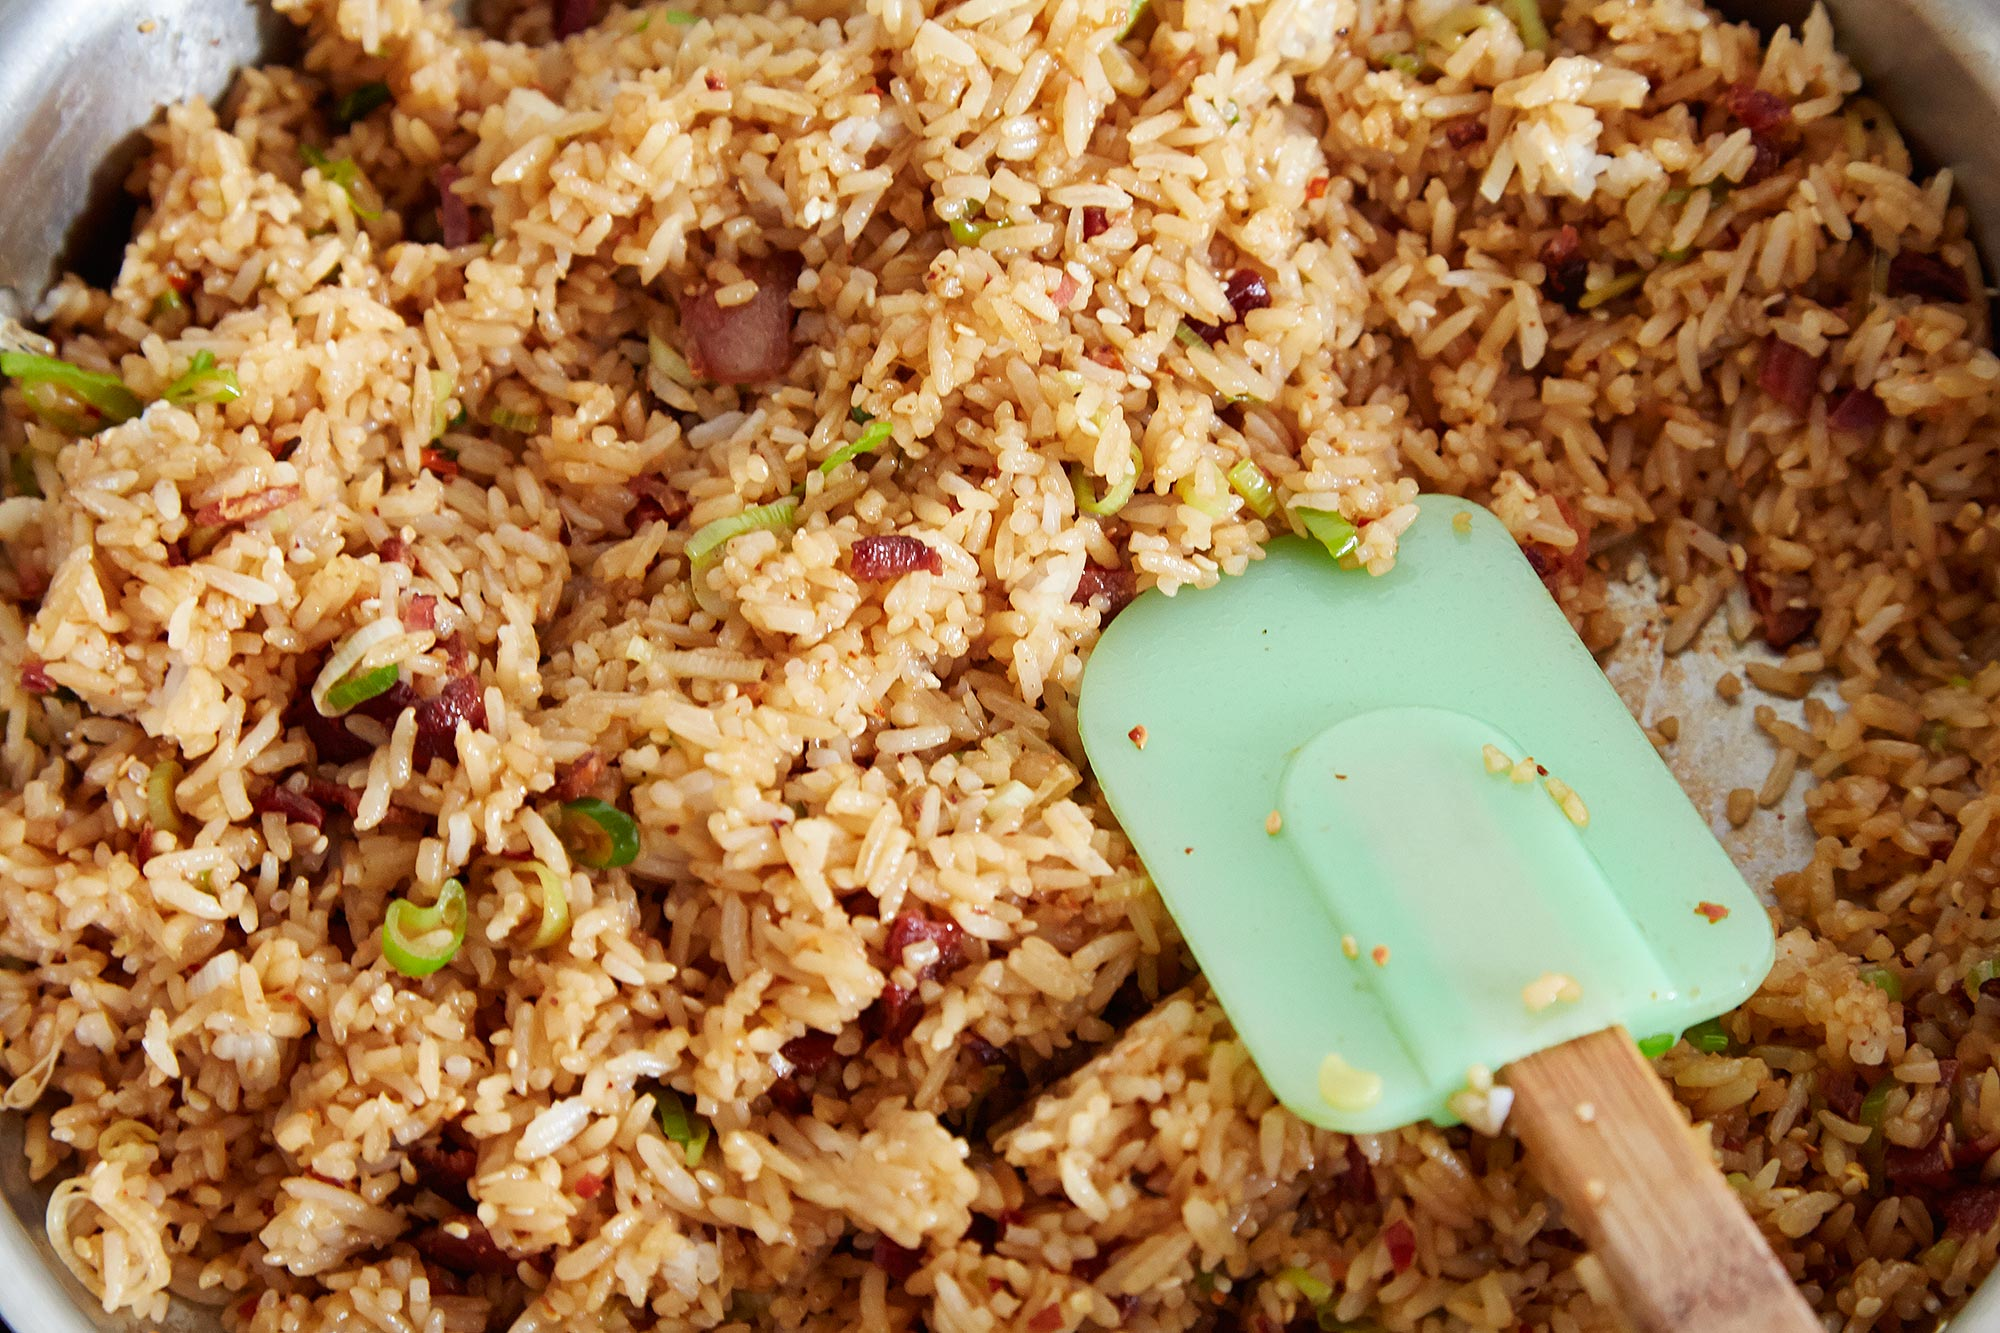 2014-0408_finalist_breakfast-fried-rice-025-164